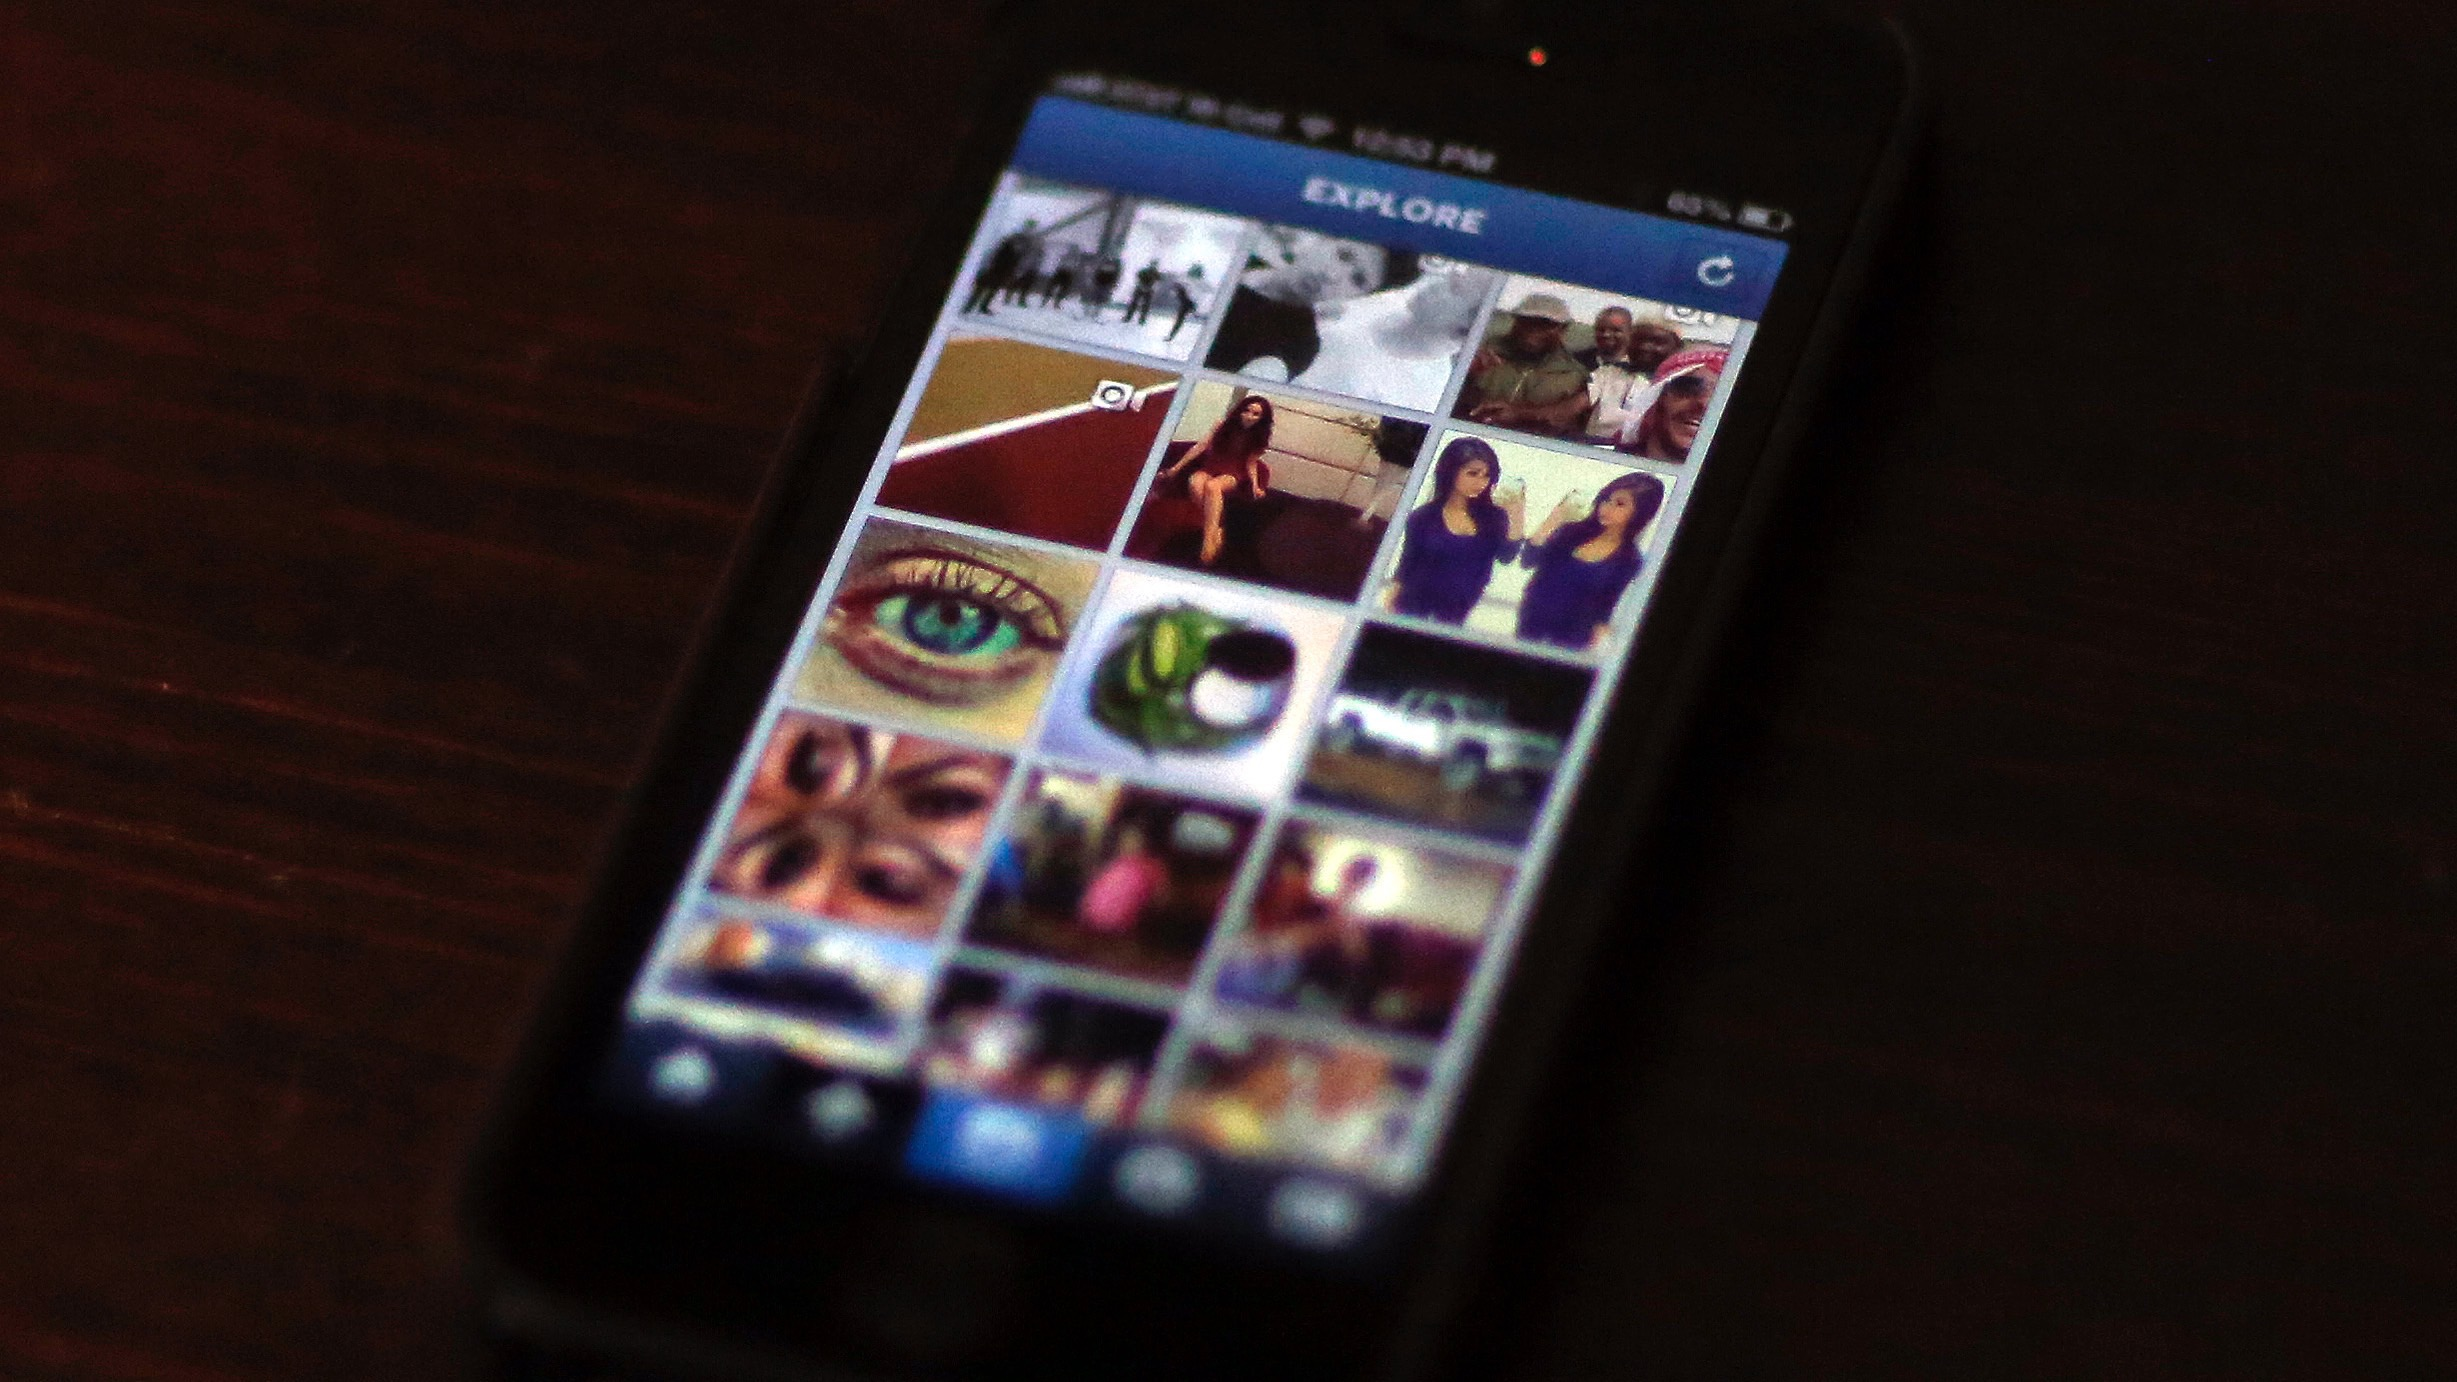 """A most popular Instagram page is displayed on a mobile device screen in Pasadena, California August 14, 2013. Researchers with RSA security have learned that Zbot, one of the world's biggest botnets is creating fake Instagram accounts and selling bundled followers and """"likes"""" at rates that are much higher than what it charges for credit card numbers.  REUTERS/Mario Anzuoni  (UNITED STATES - Tags: ENTERTAINMENT) - RTX12MAZ"""